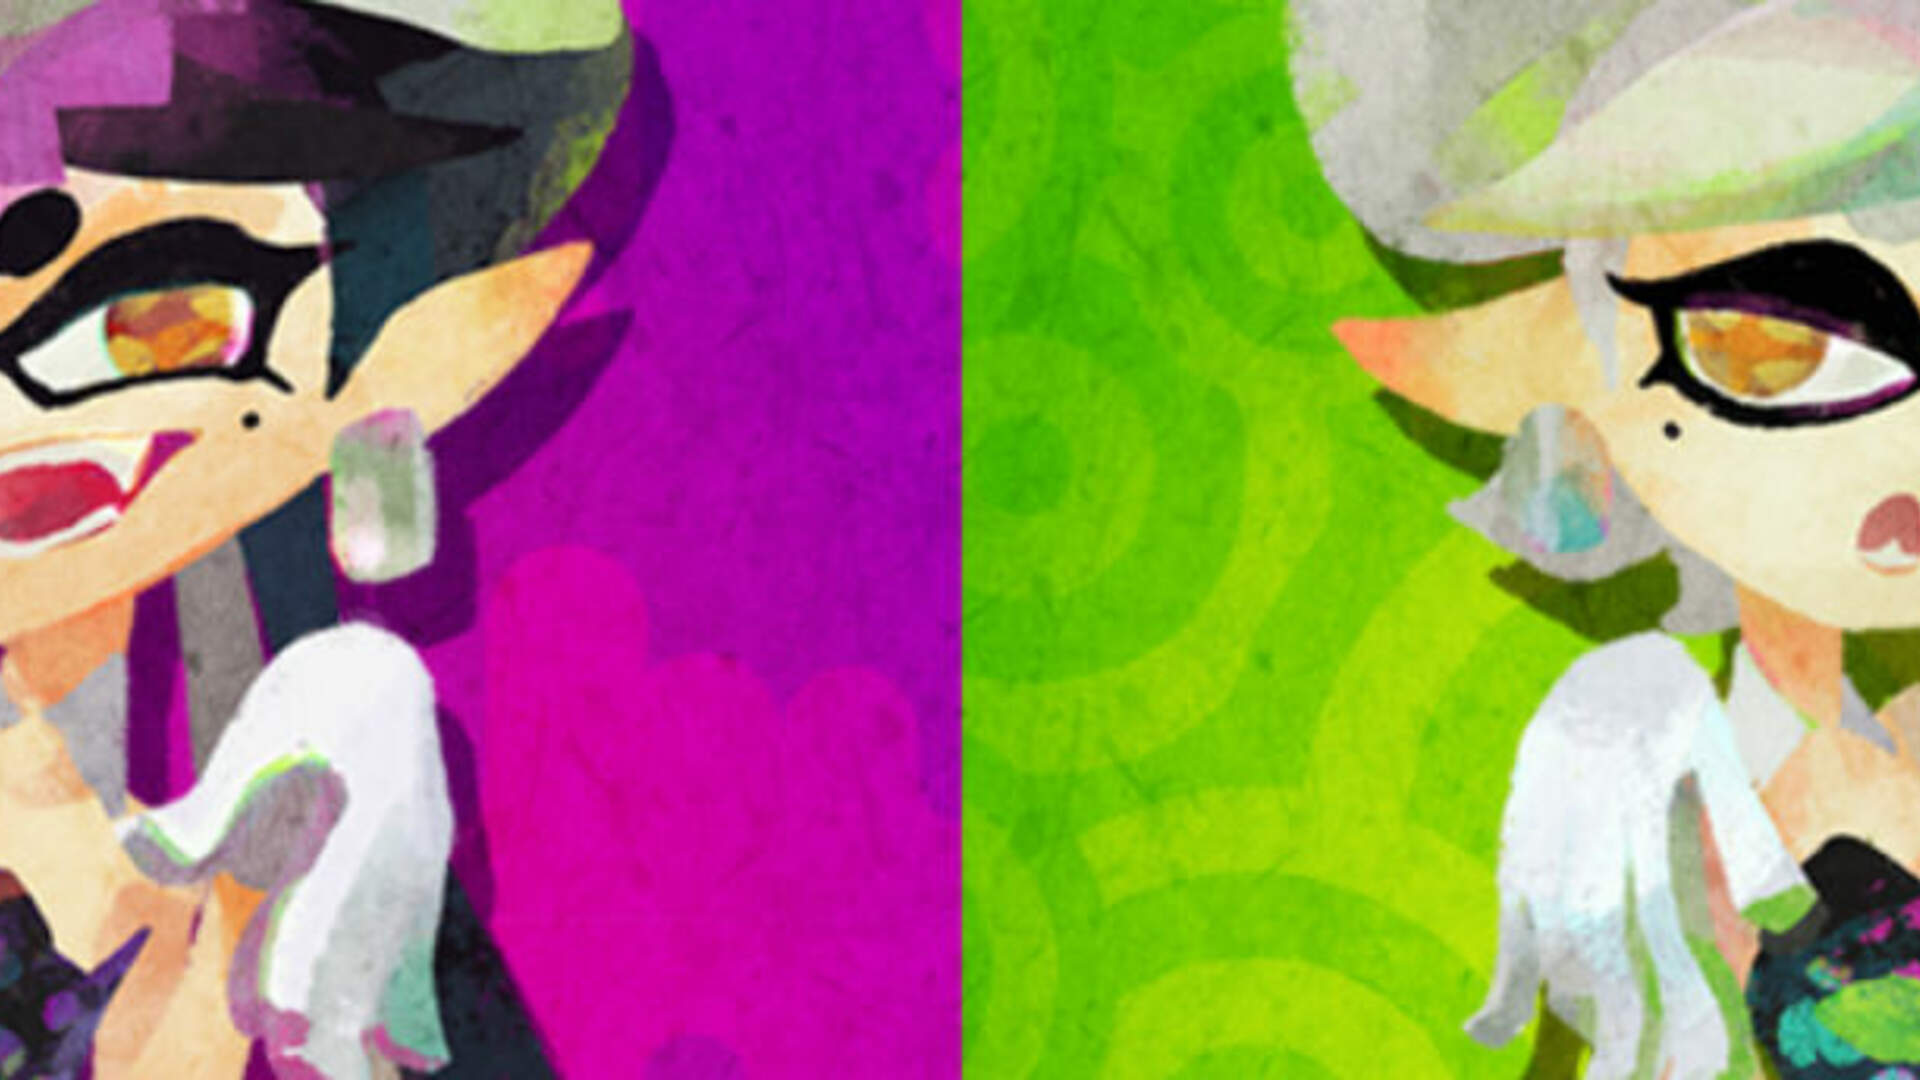 Does Splatoon 2's Single-Player Campaign Involve a War Between the Squid Sisters?